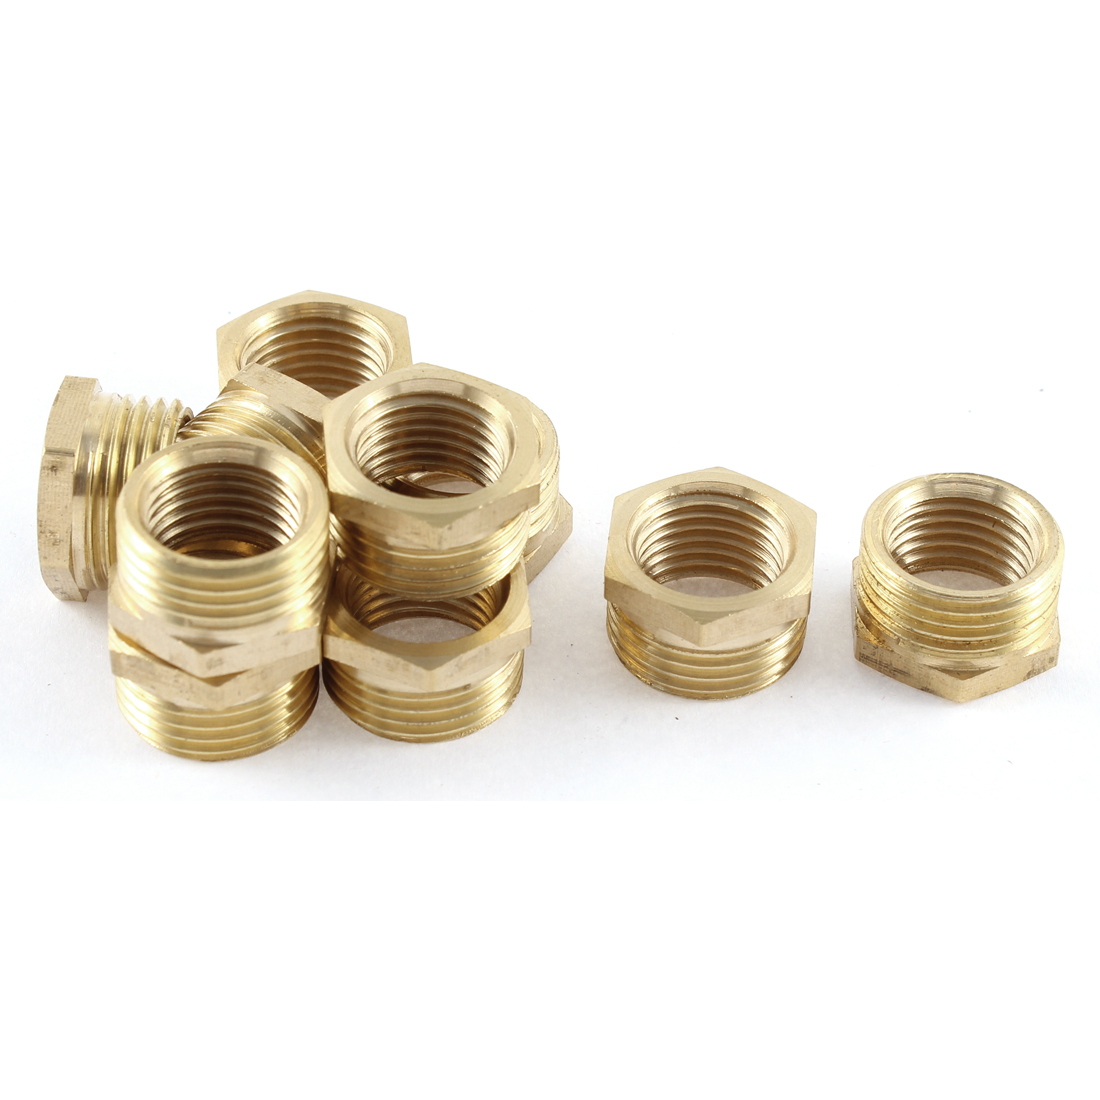 3/8BSP Male x 1/4BSP Female Brass Pipe Water Reducer Hex Bushing Connector 10 Pcs